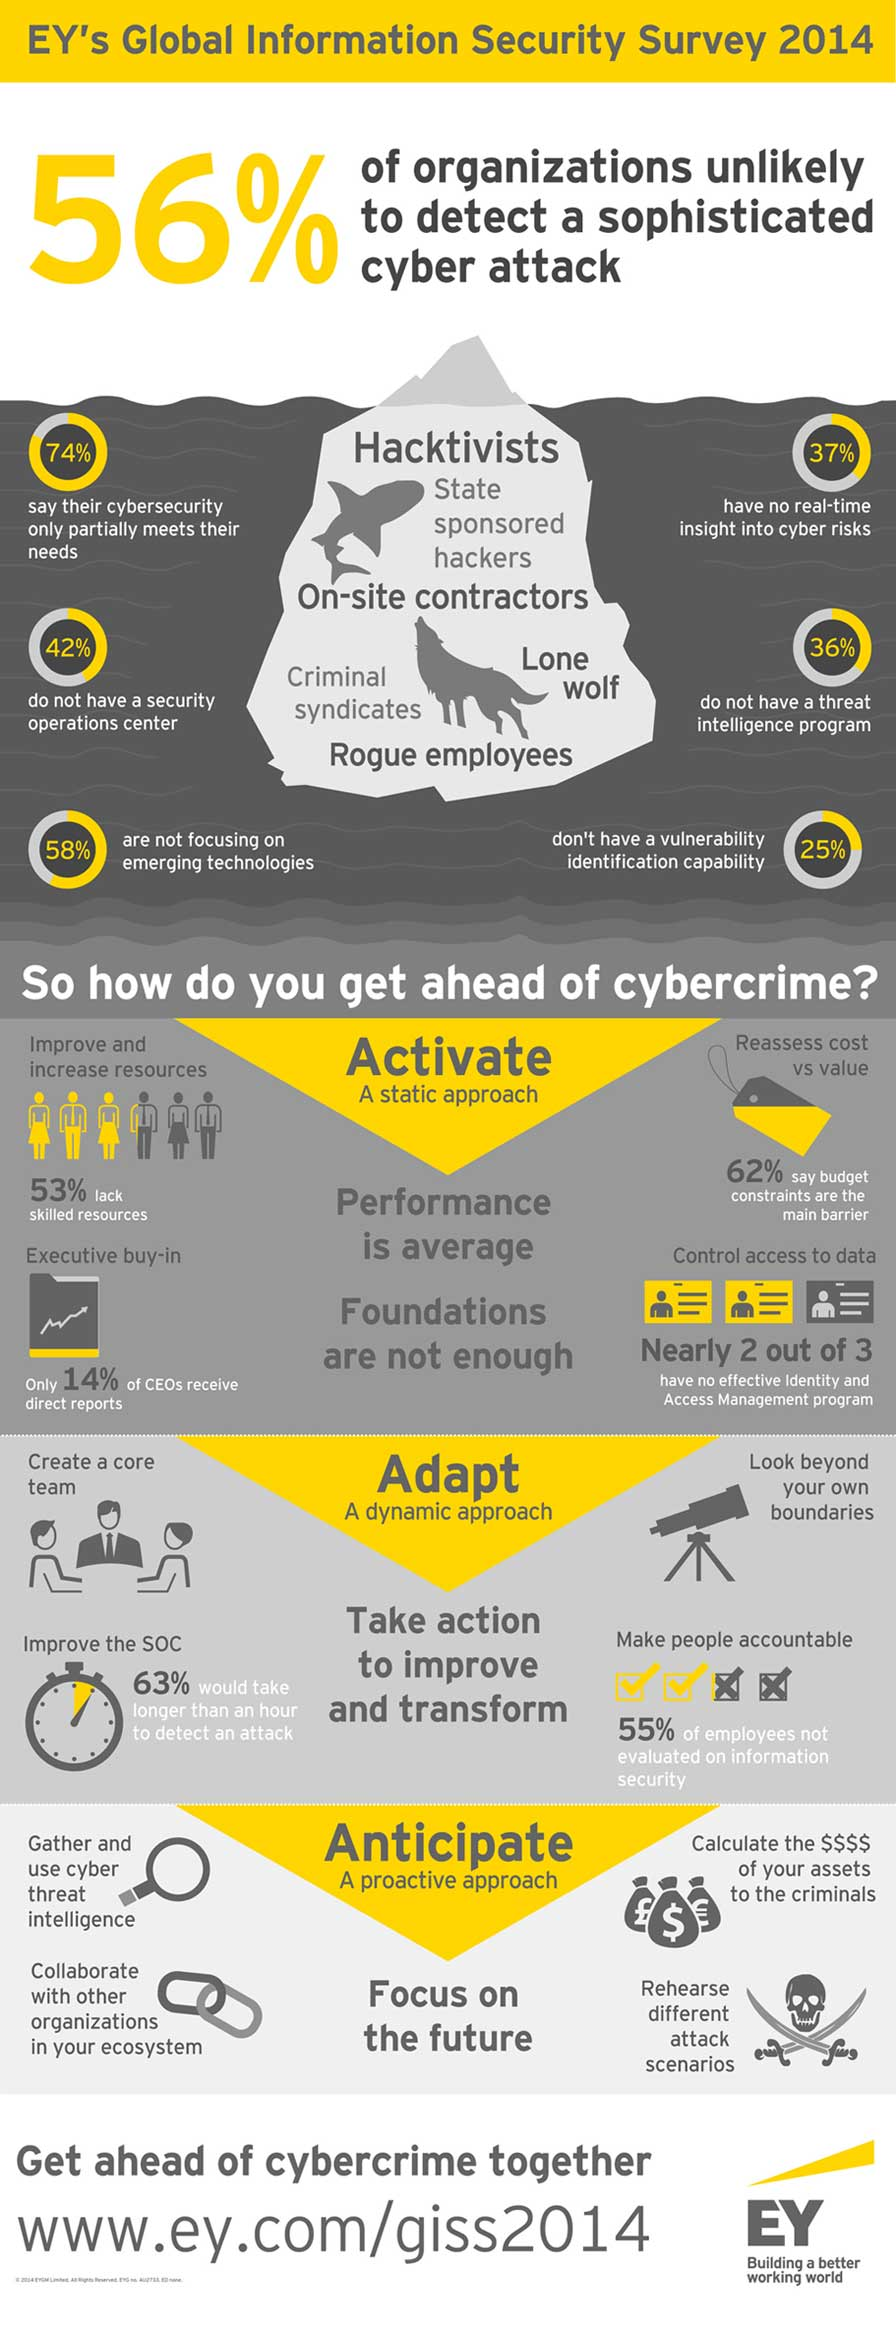 ey-giss-2014-infographic